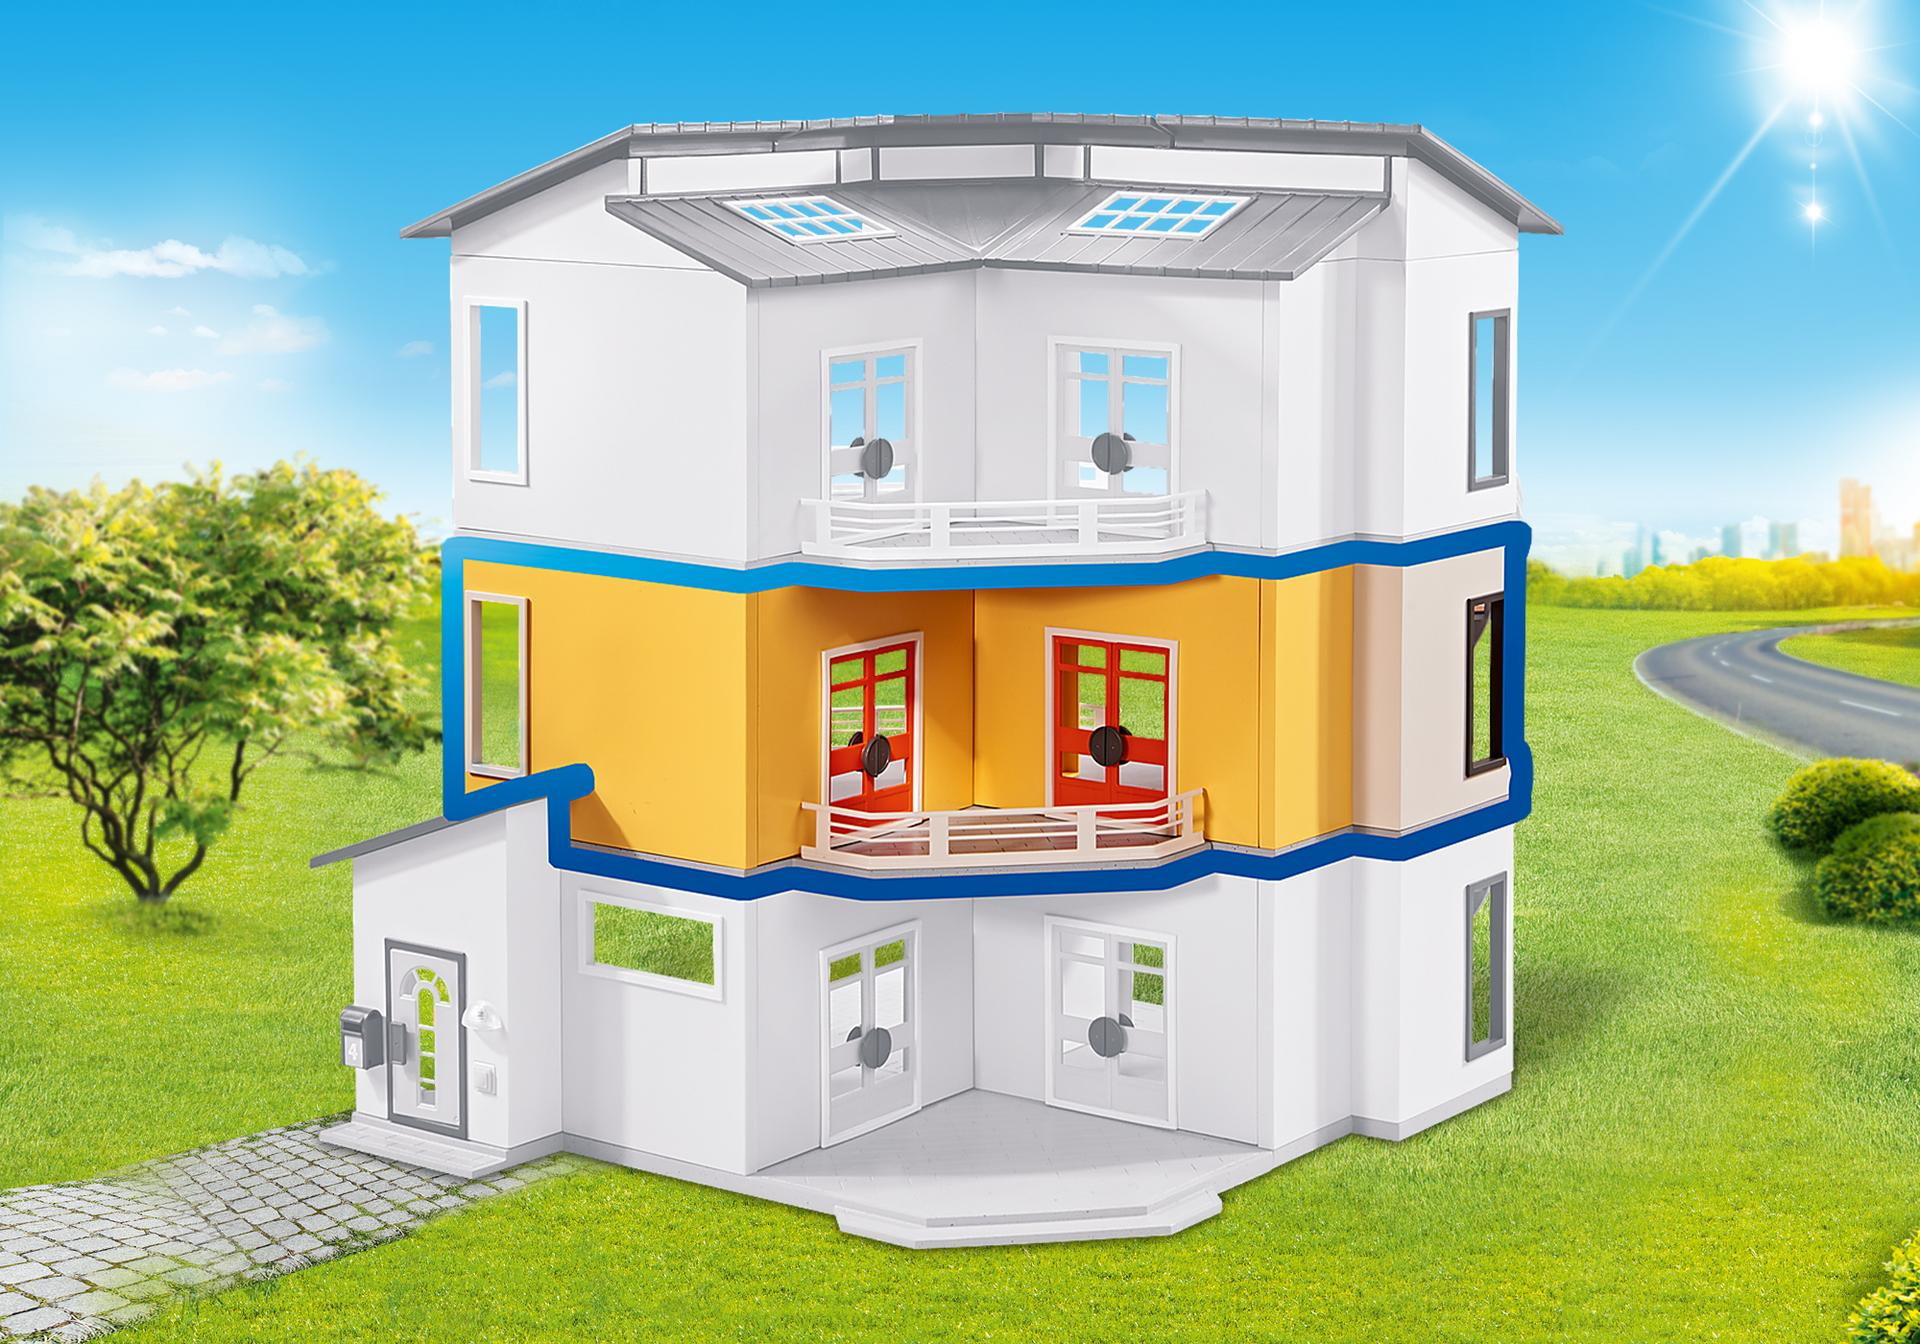 Floor extension for the modern house 9266 6554 for Playmobil modernes haus 9266